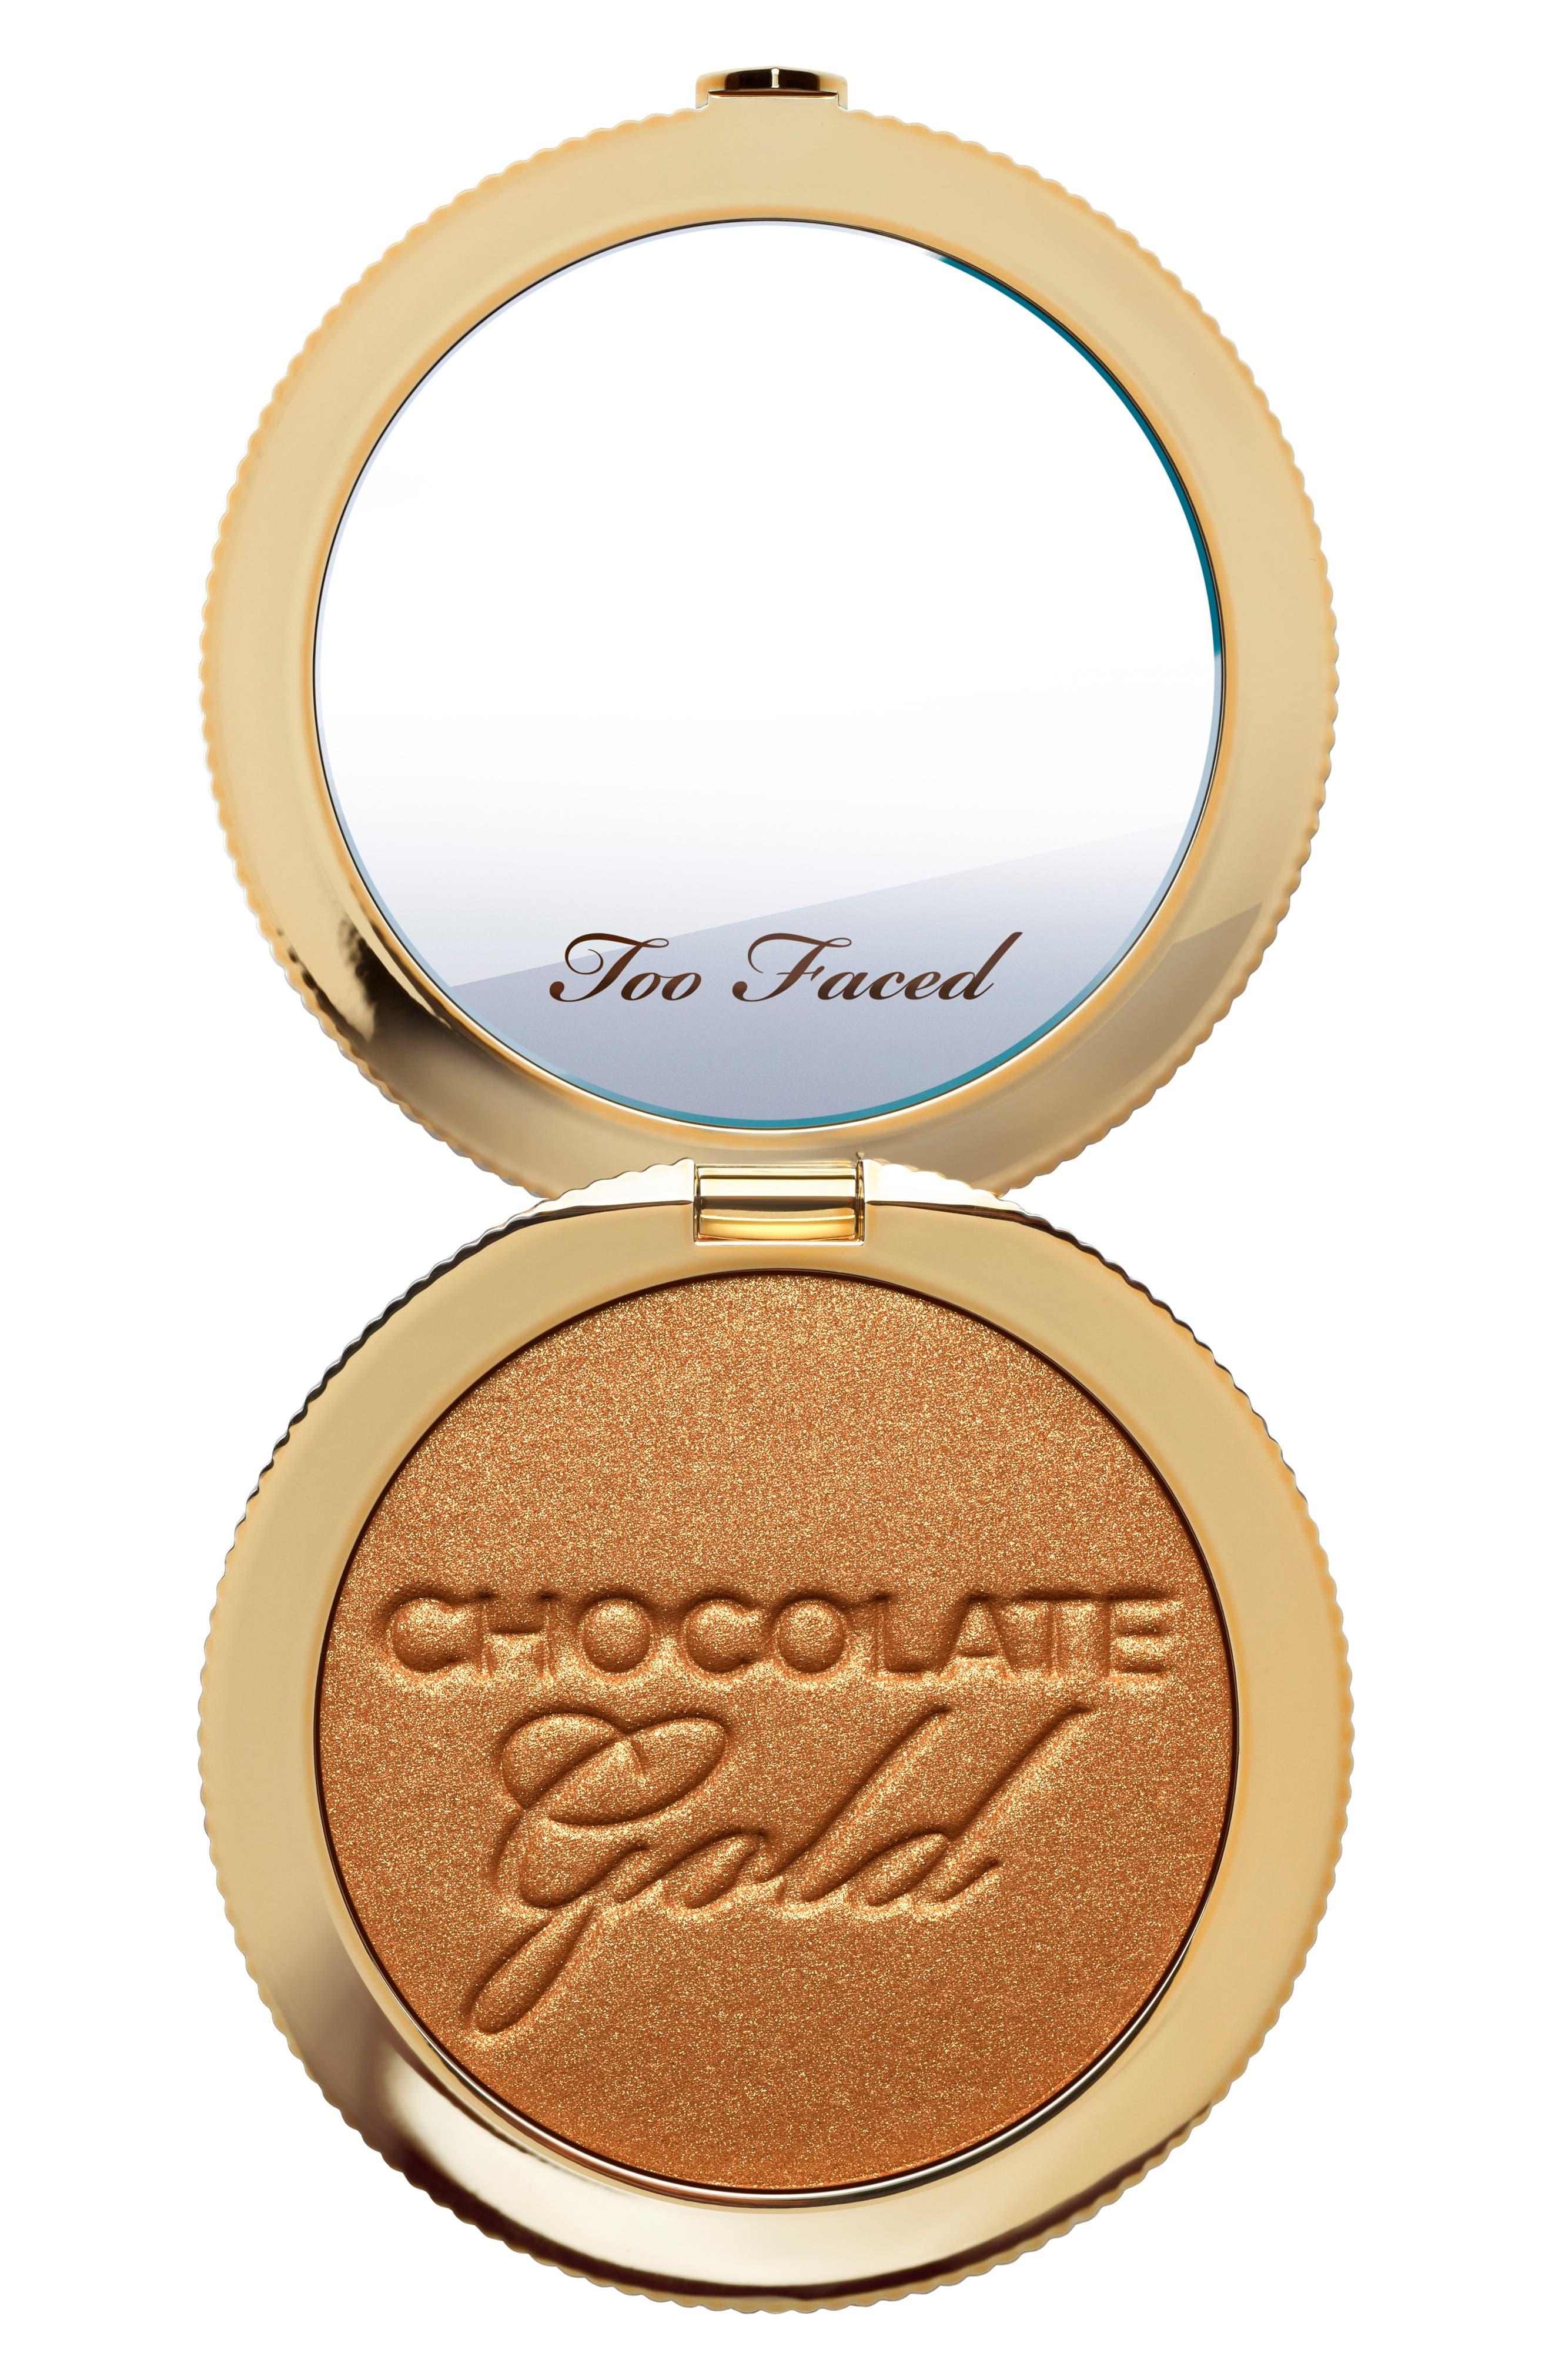 Chocolate Gold Soleil Bronzer,                             Alternate thumbnail 2, color,                             Chocolate Gold Soleil